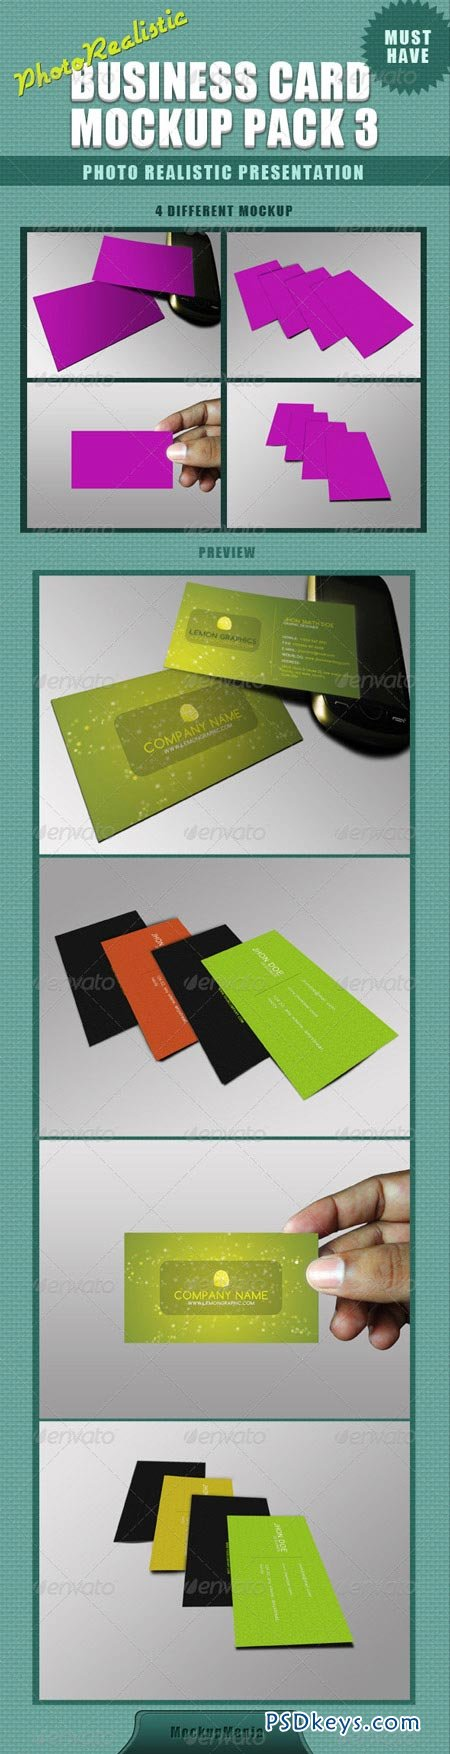 Photorealistic Business Card Mockup 3 2456916